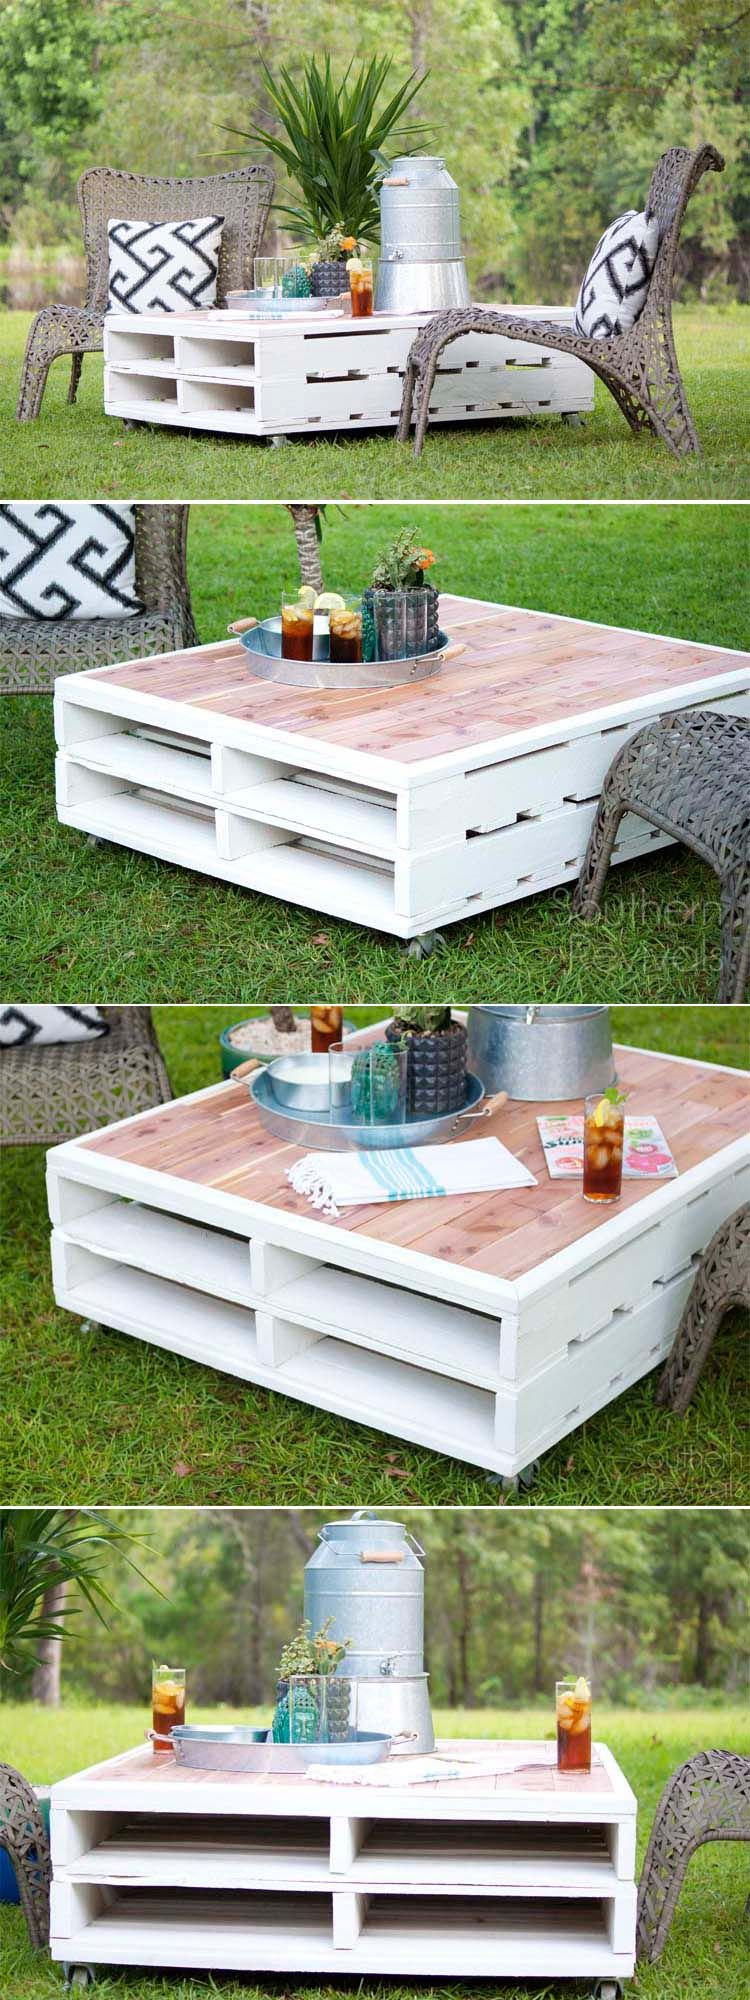 Sandbox Design Ideas top 10 backyard sandbox ideas boats 15 Outdoor Pallet Furniture Ideas